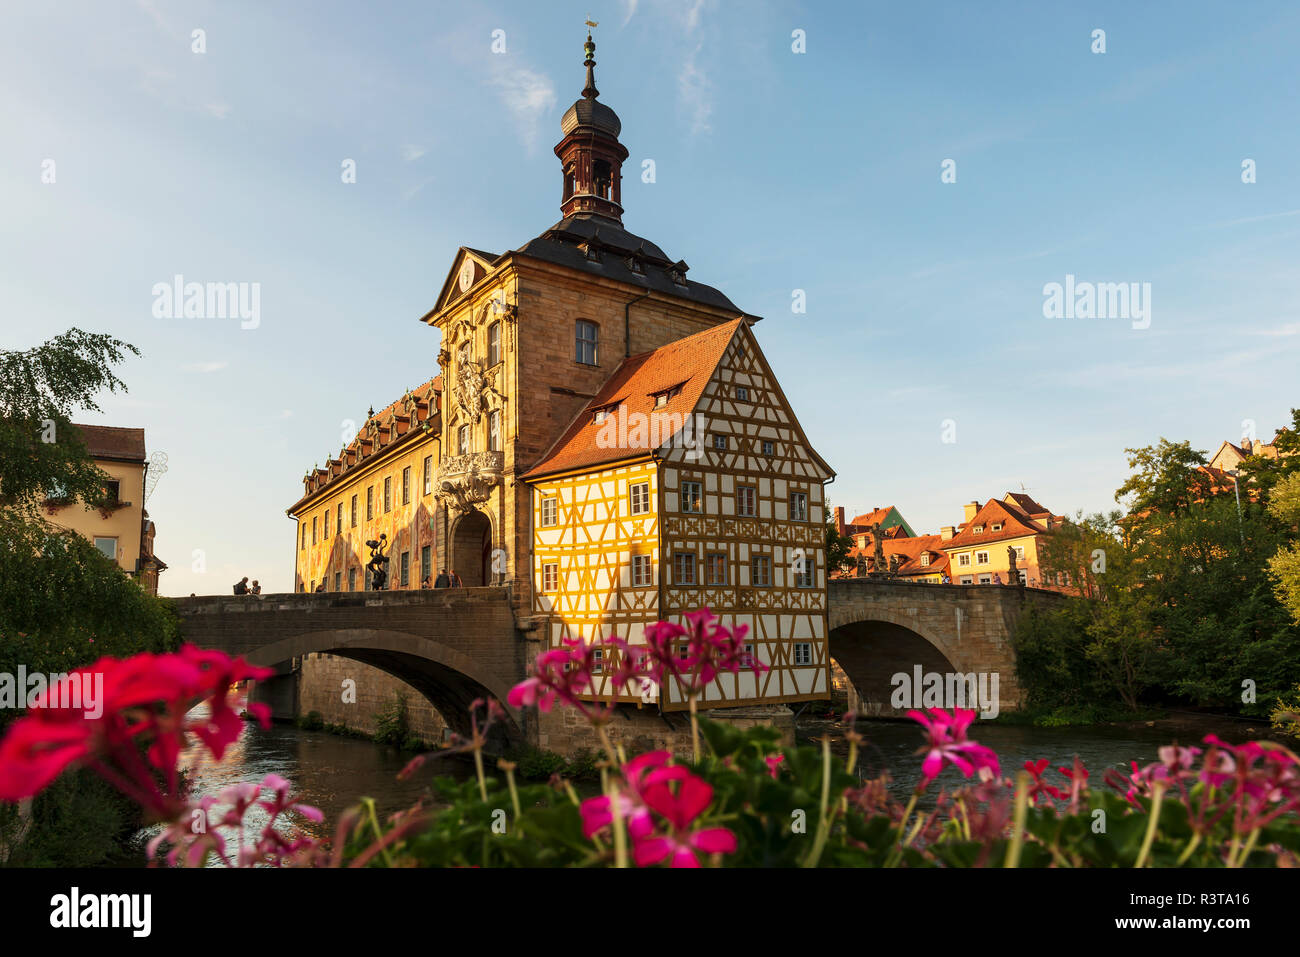 Germany, Bavaria, Upper Franconia, Bamberg, Old townhall, Obere Bruecke and Regnitz river - Stock Image